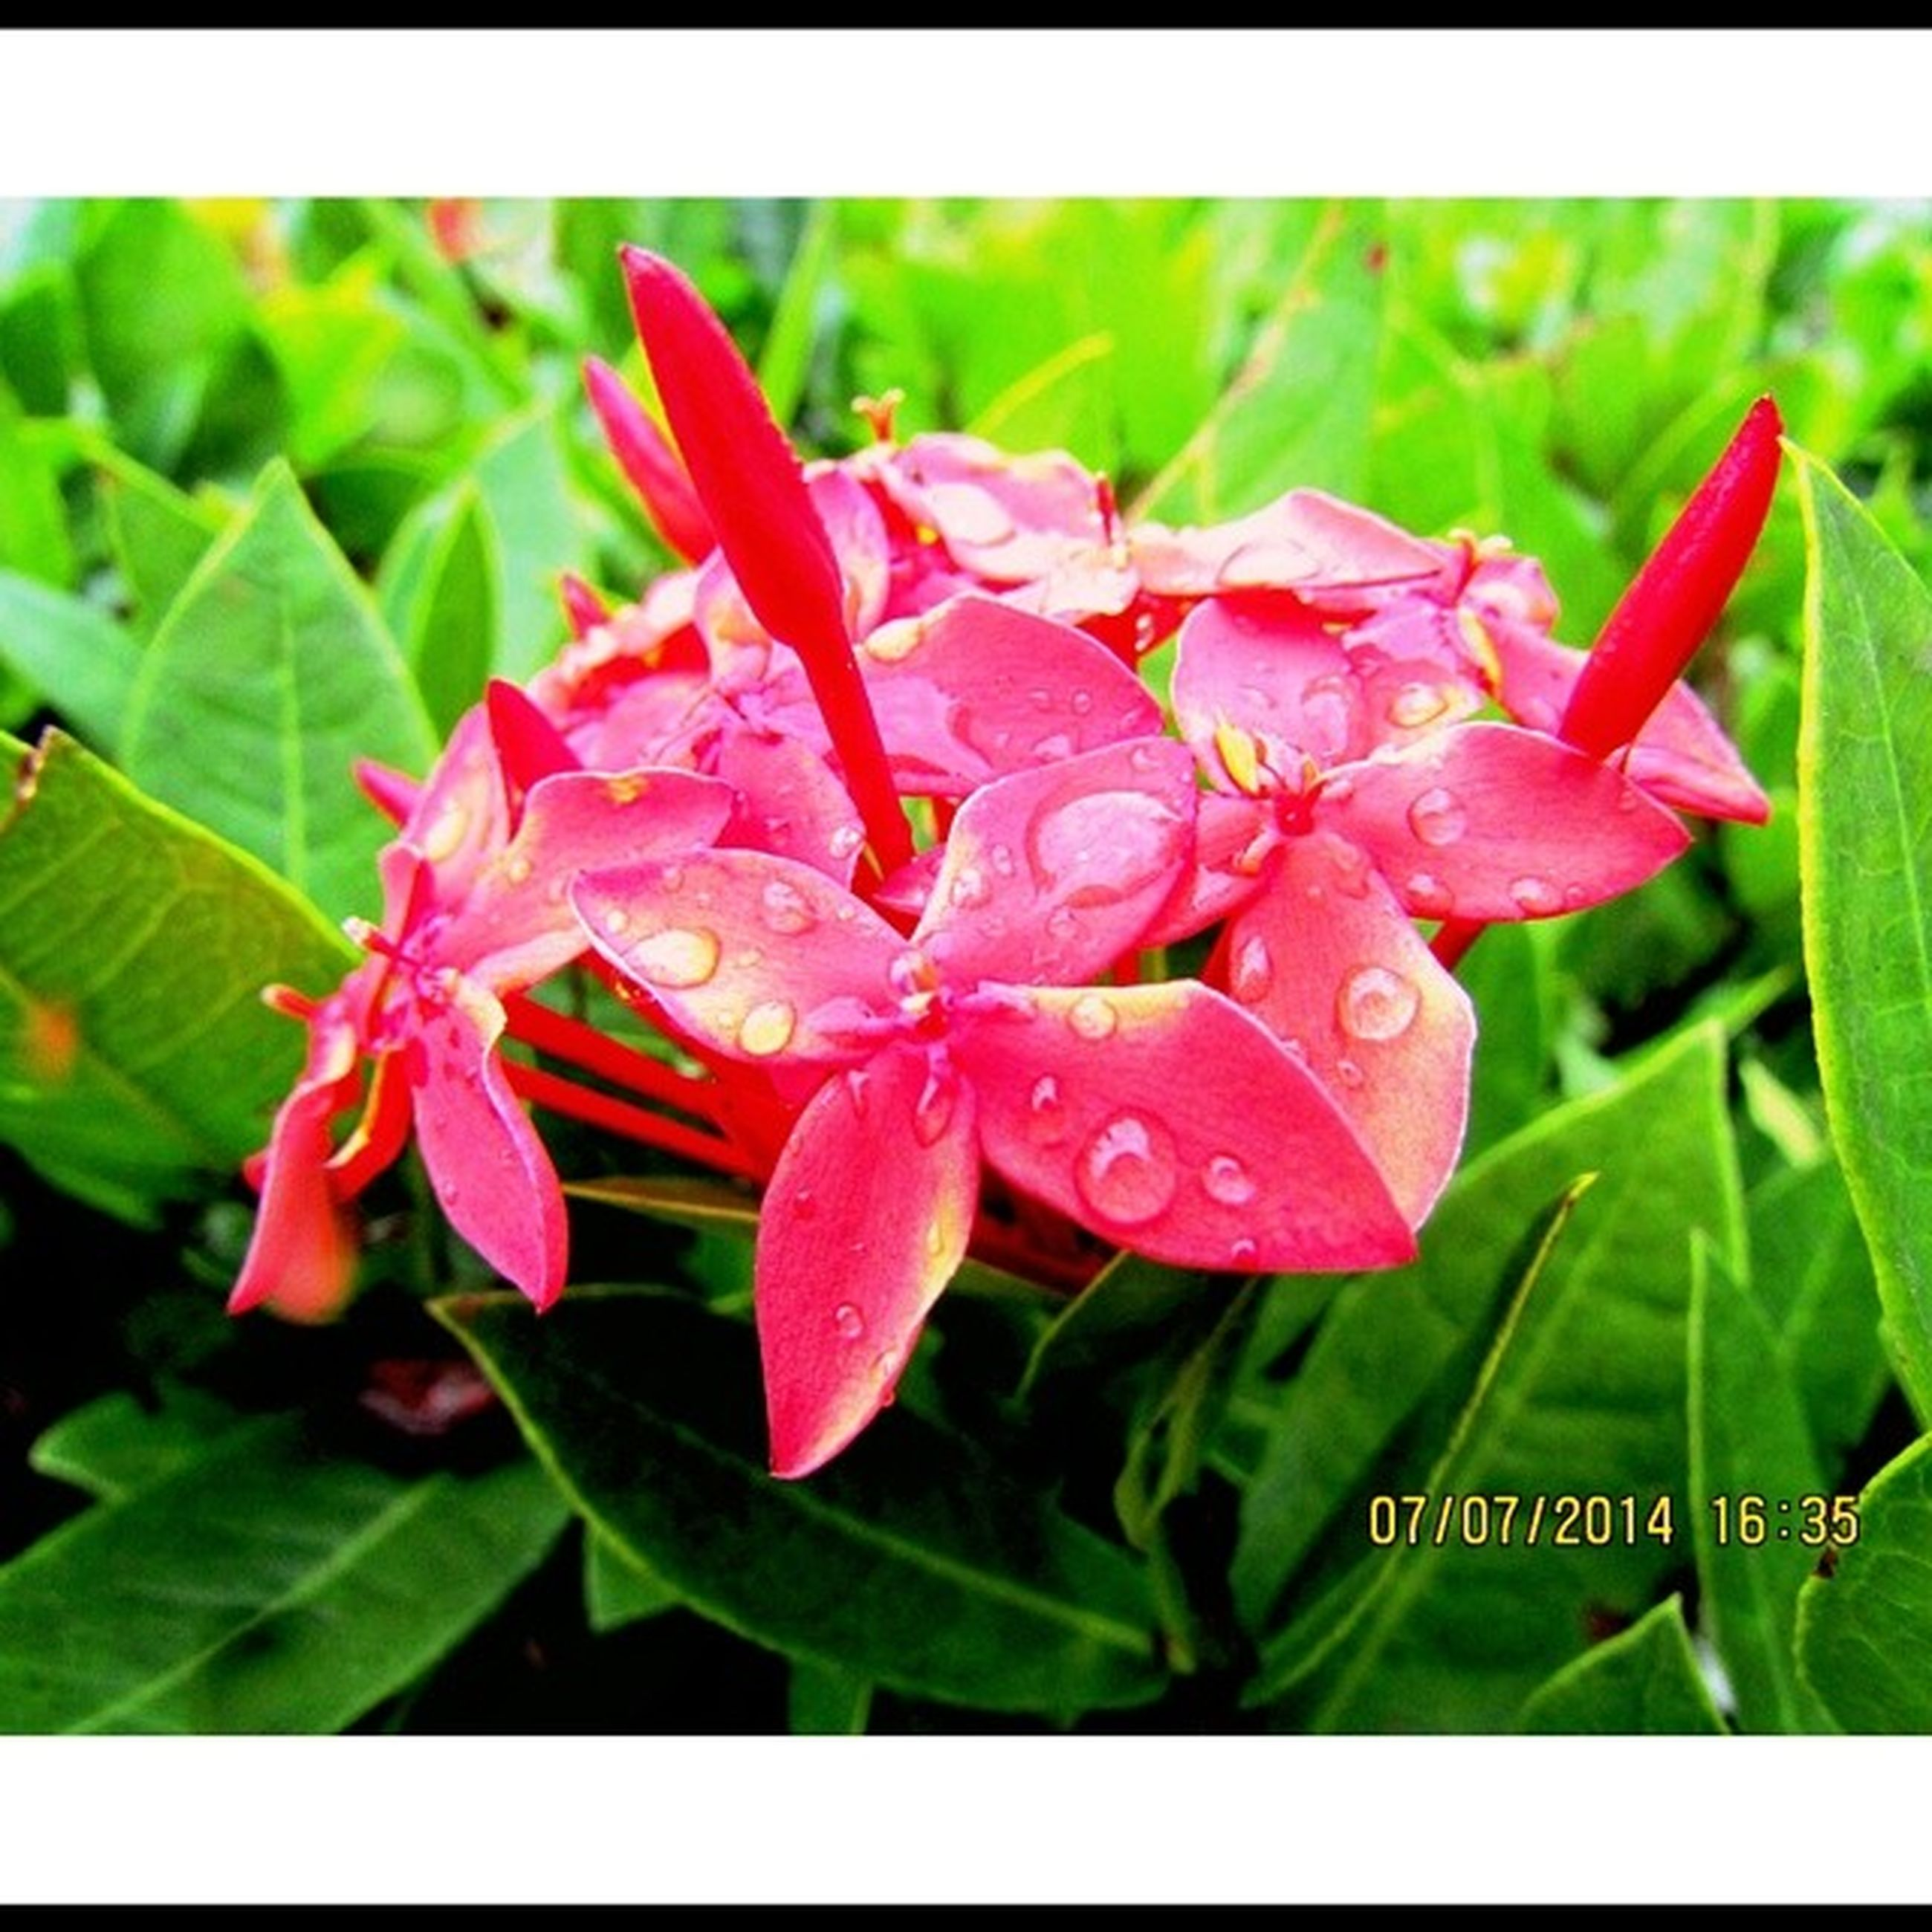 transfer print, flower, freshness, petal, fragility, growth, flower head, beauty in nature, auto post production filter, close-up, drop, leaf, plant, wet, nature, water, focus on foreground, blooming, green color, pink color